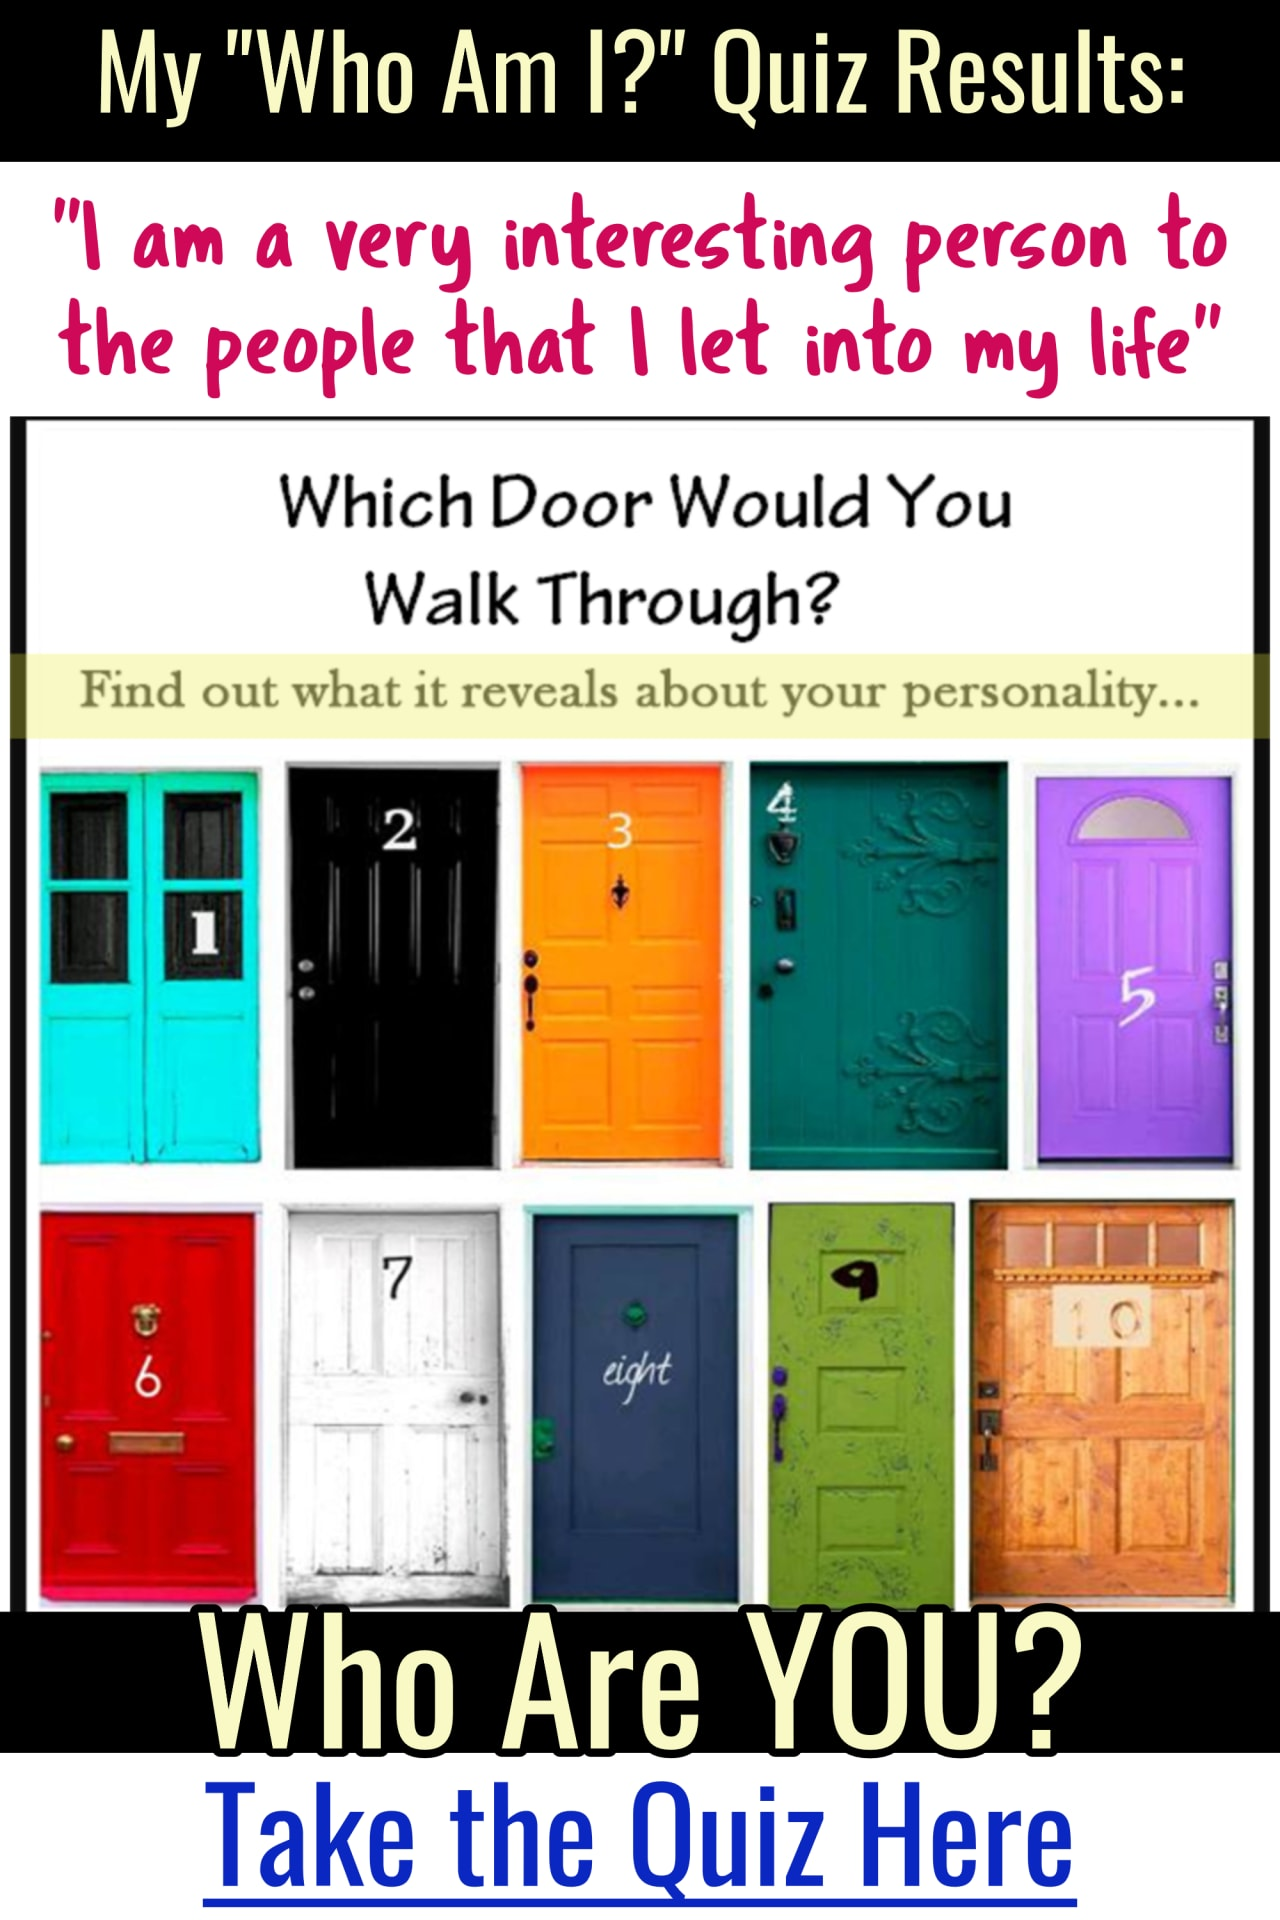 Fun Who Am I quiz to take - LOVE these fun personality tests!  This is who I am - who are YOU?  Take the online quiz now - take the personality quiz with friends!